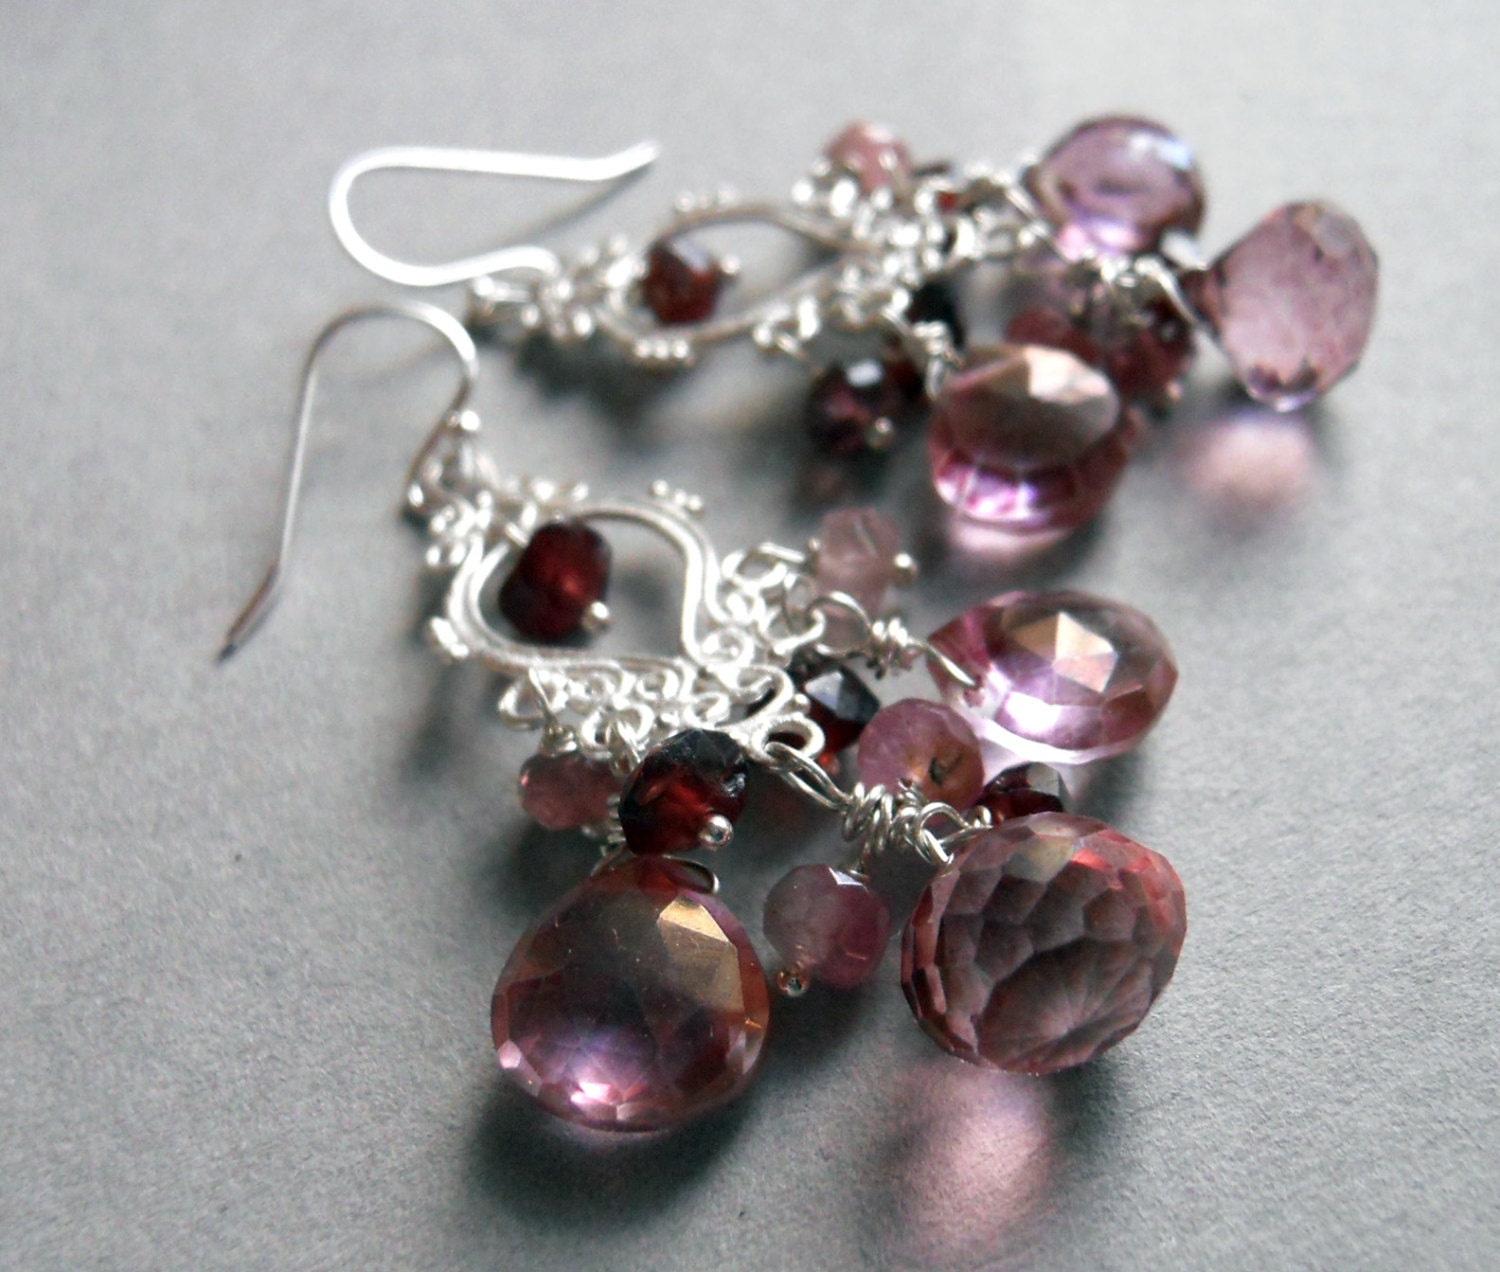 Pink is Sexy Mystic quartz Tourmaline and garnet chandelier earrings : Collection - $125.00 USD